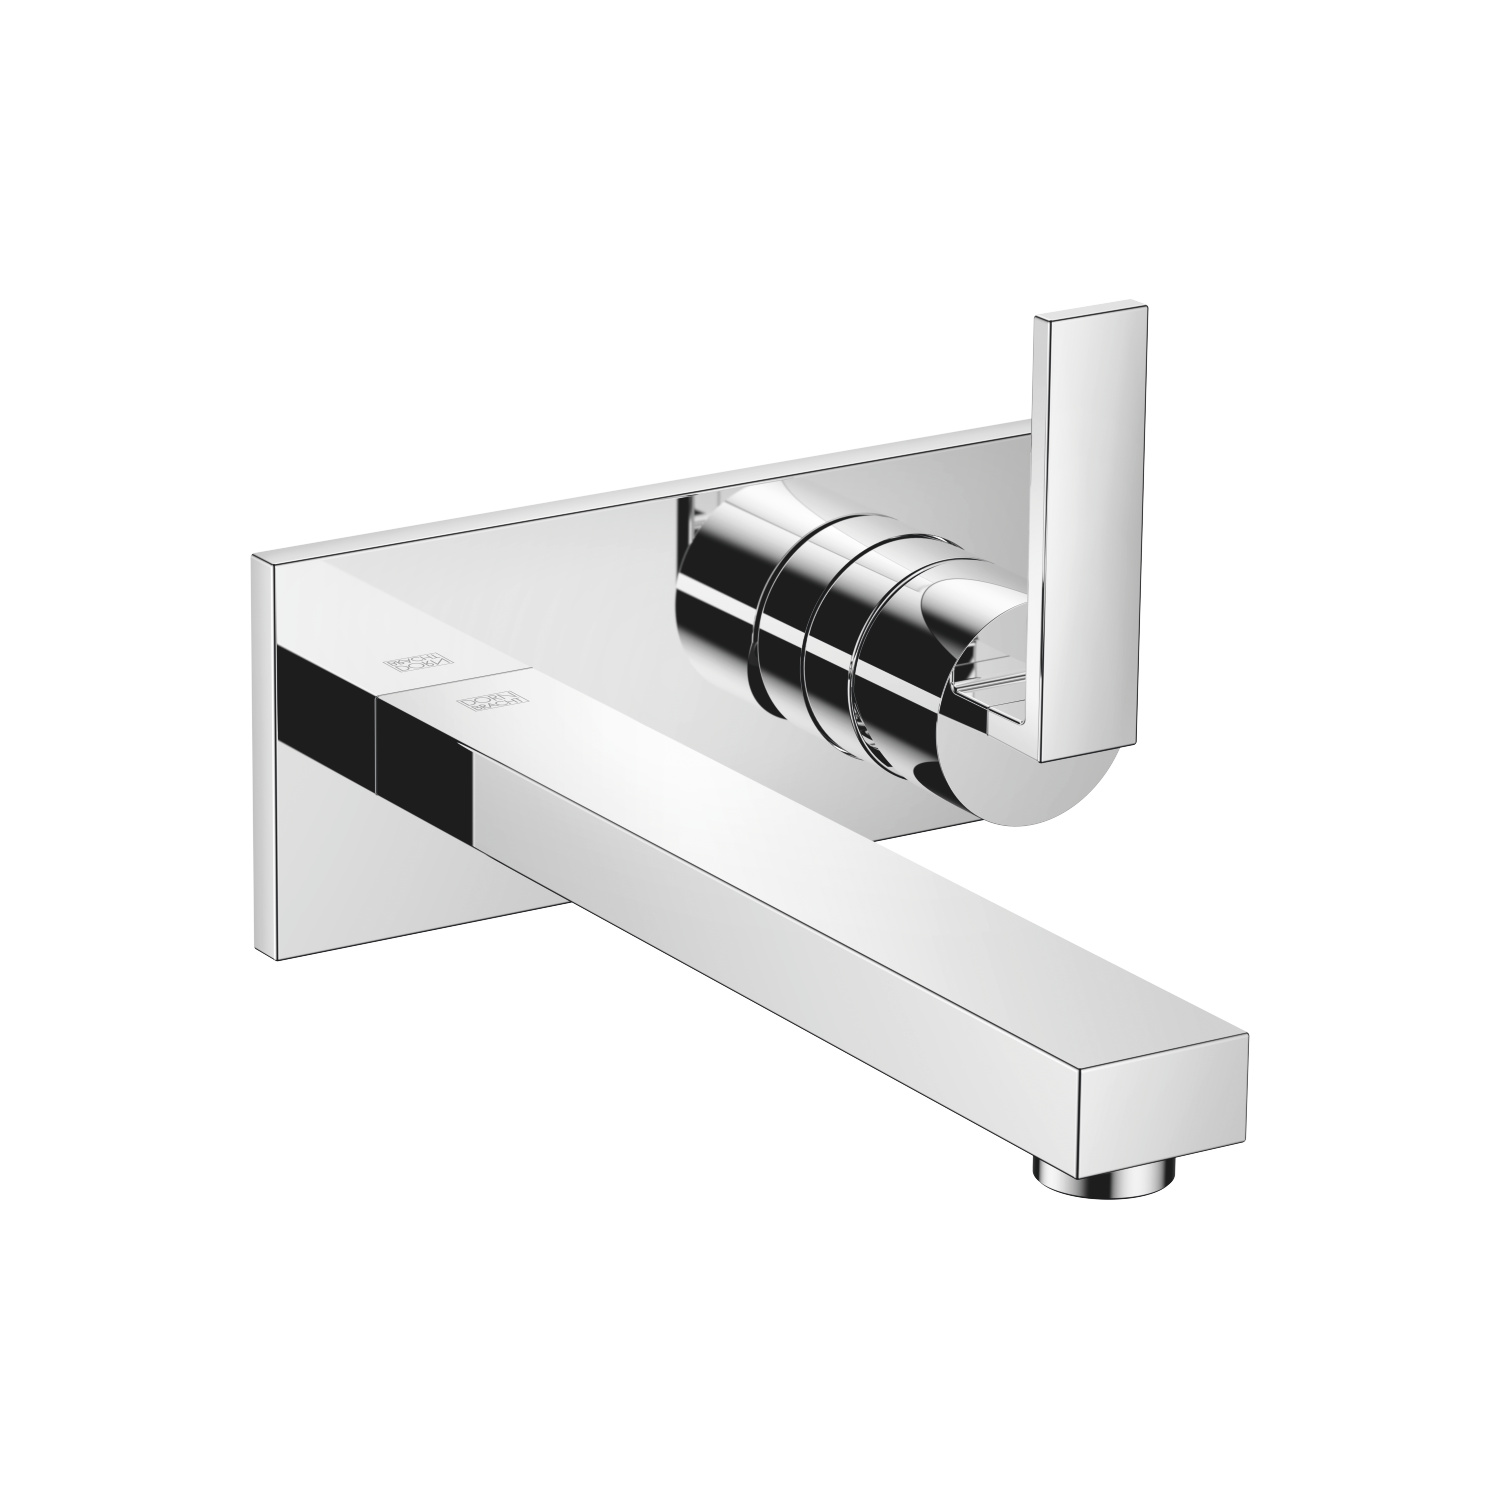 Wall-mounted mixer with cover plate - polished chrome